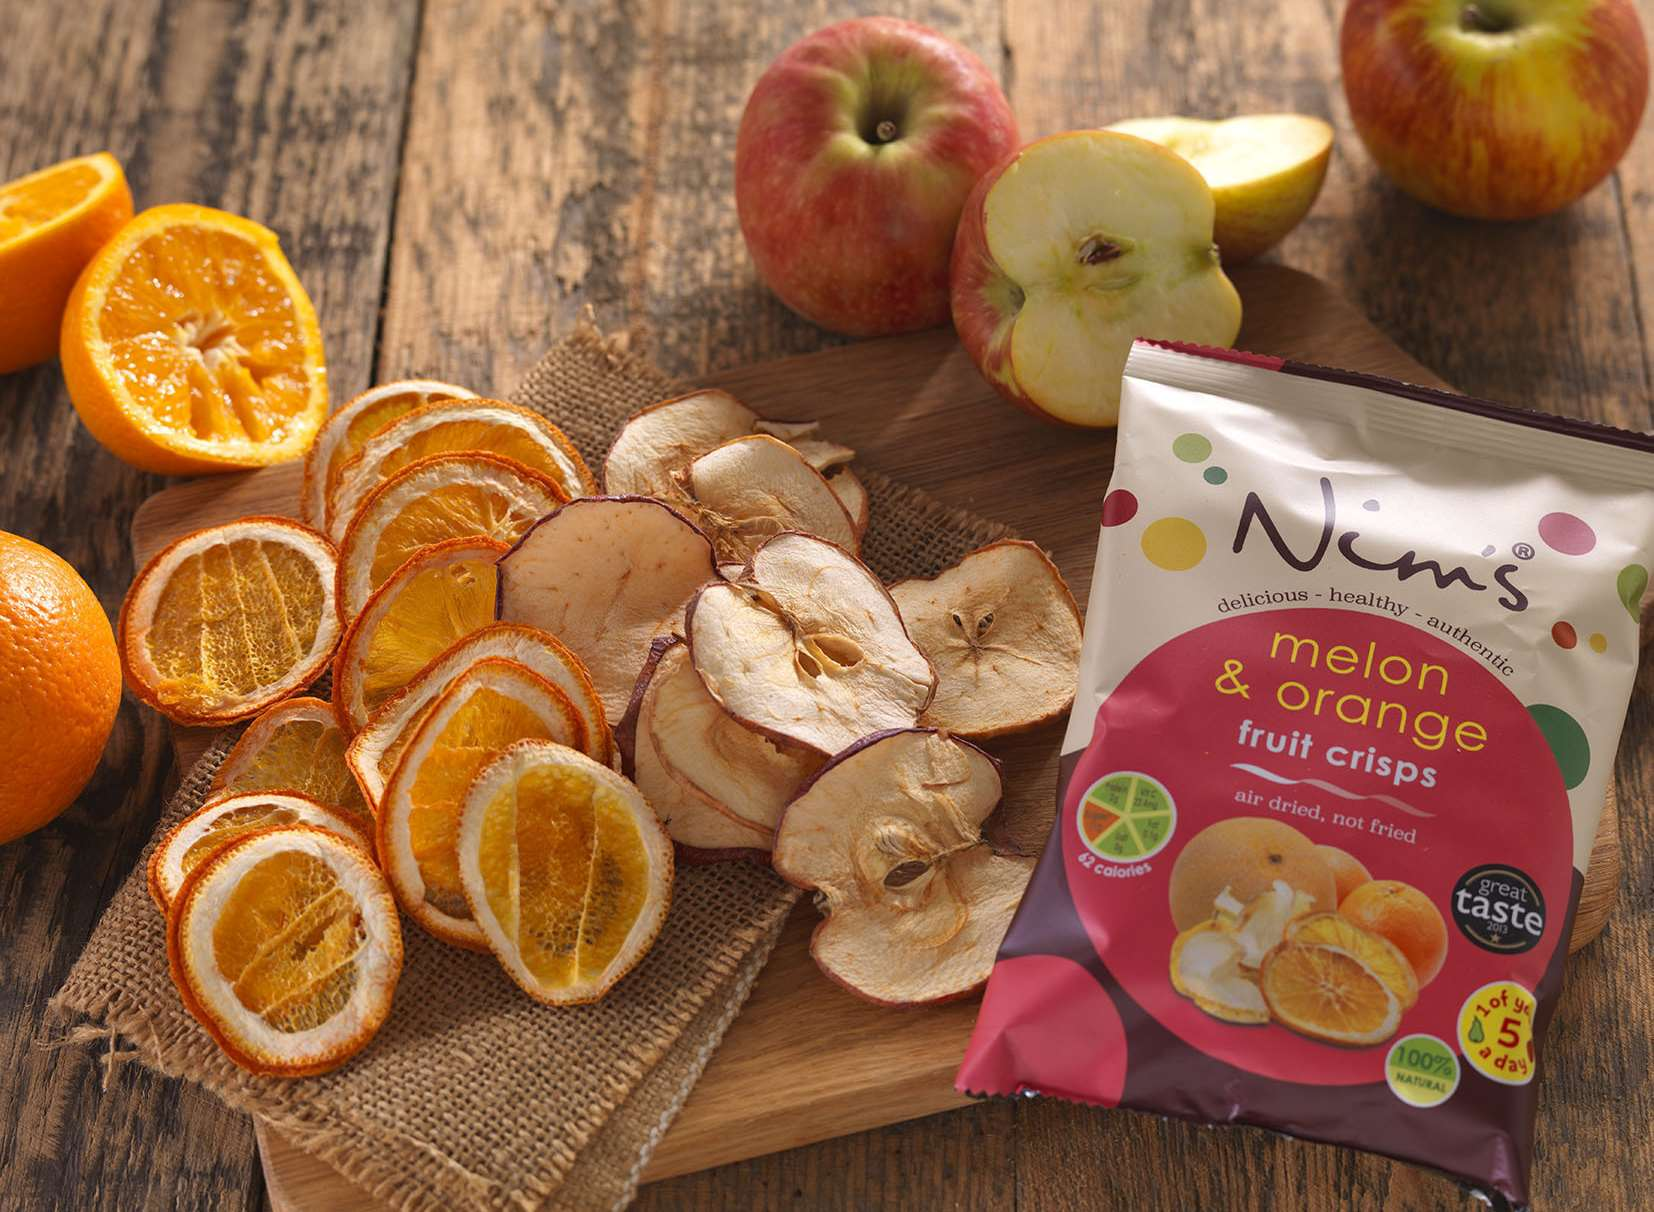 Nim's Fruit Crisps is based in Sittingbourne